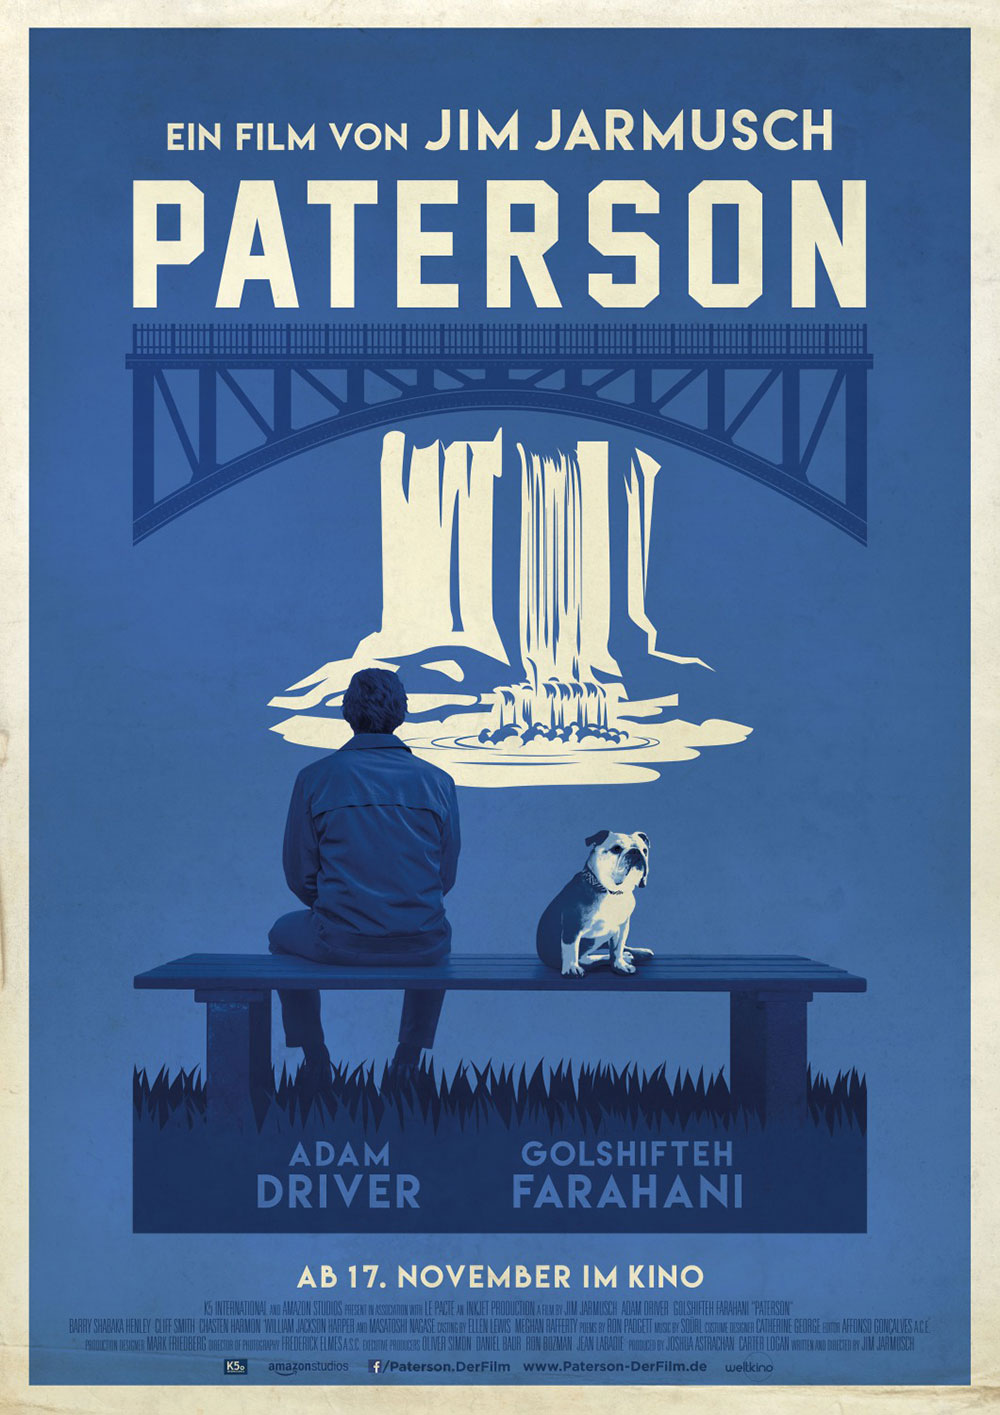 German poster for Jim Jarmusch's Paterson. Designer unknown